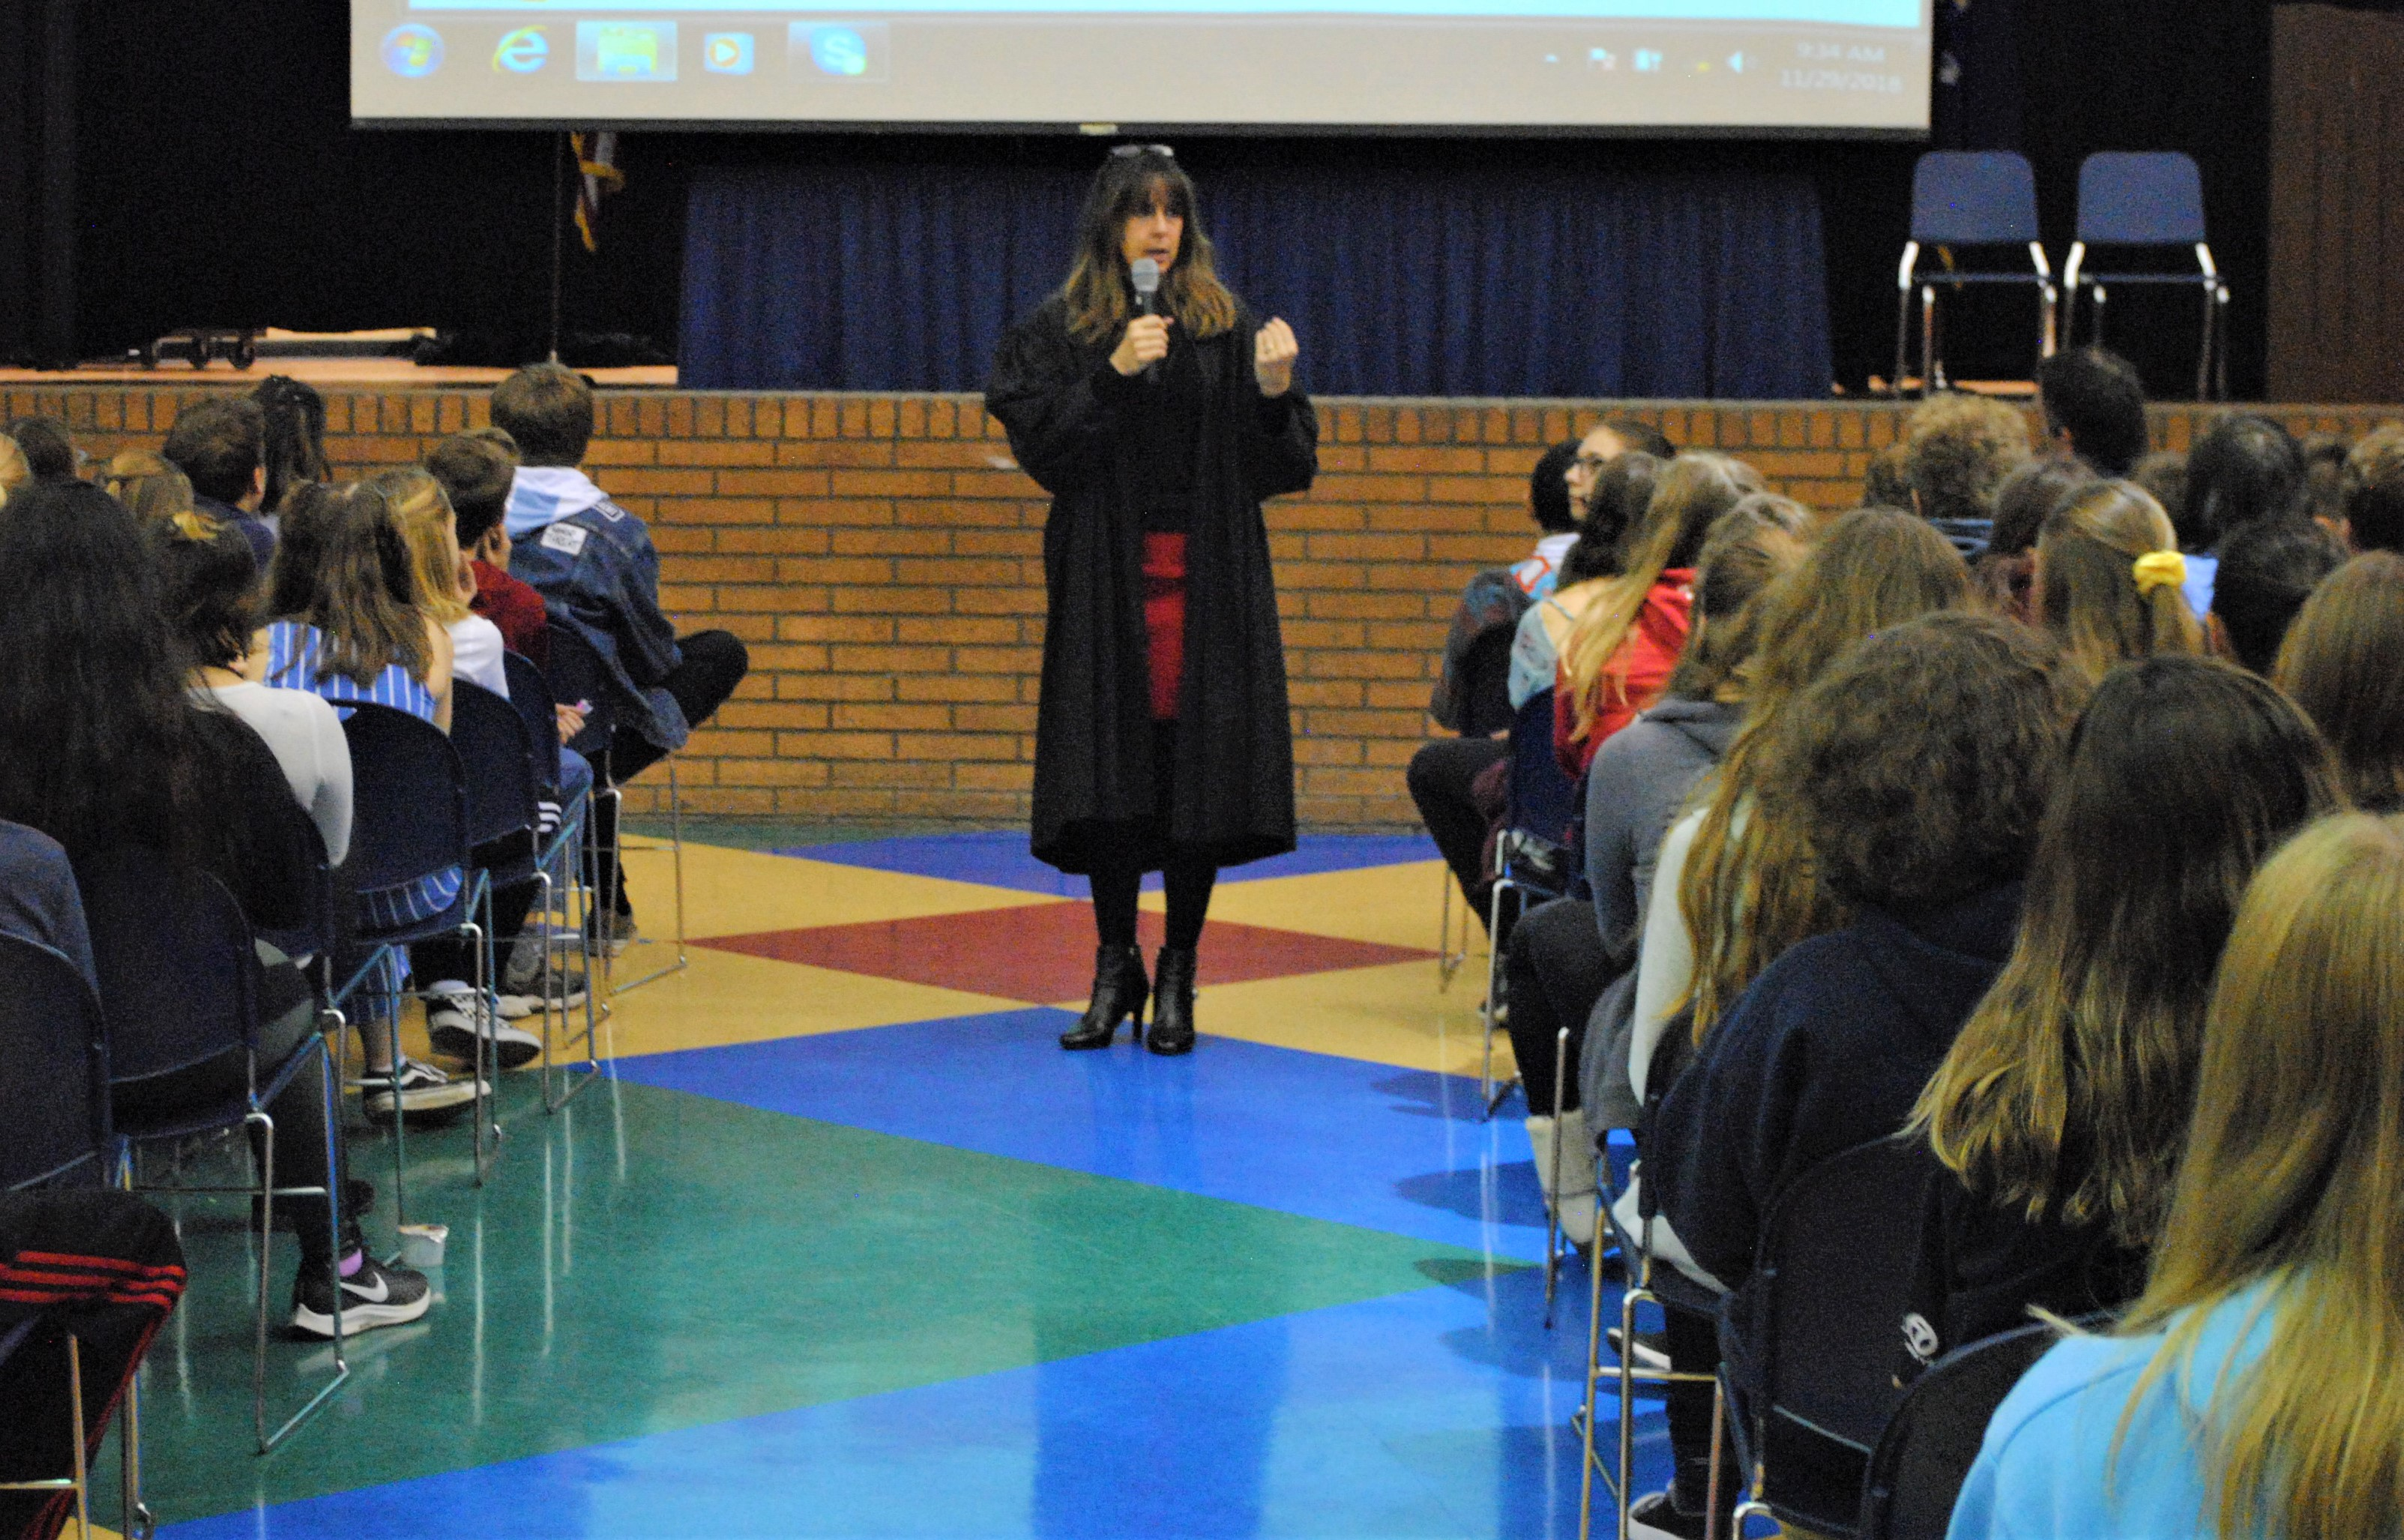 52-3 District Judge Julie Nicholson has been talking to middle and high school students about life-altering choices for the past 22 years. Photo by Shelby Tankersley.